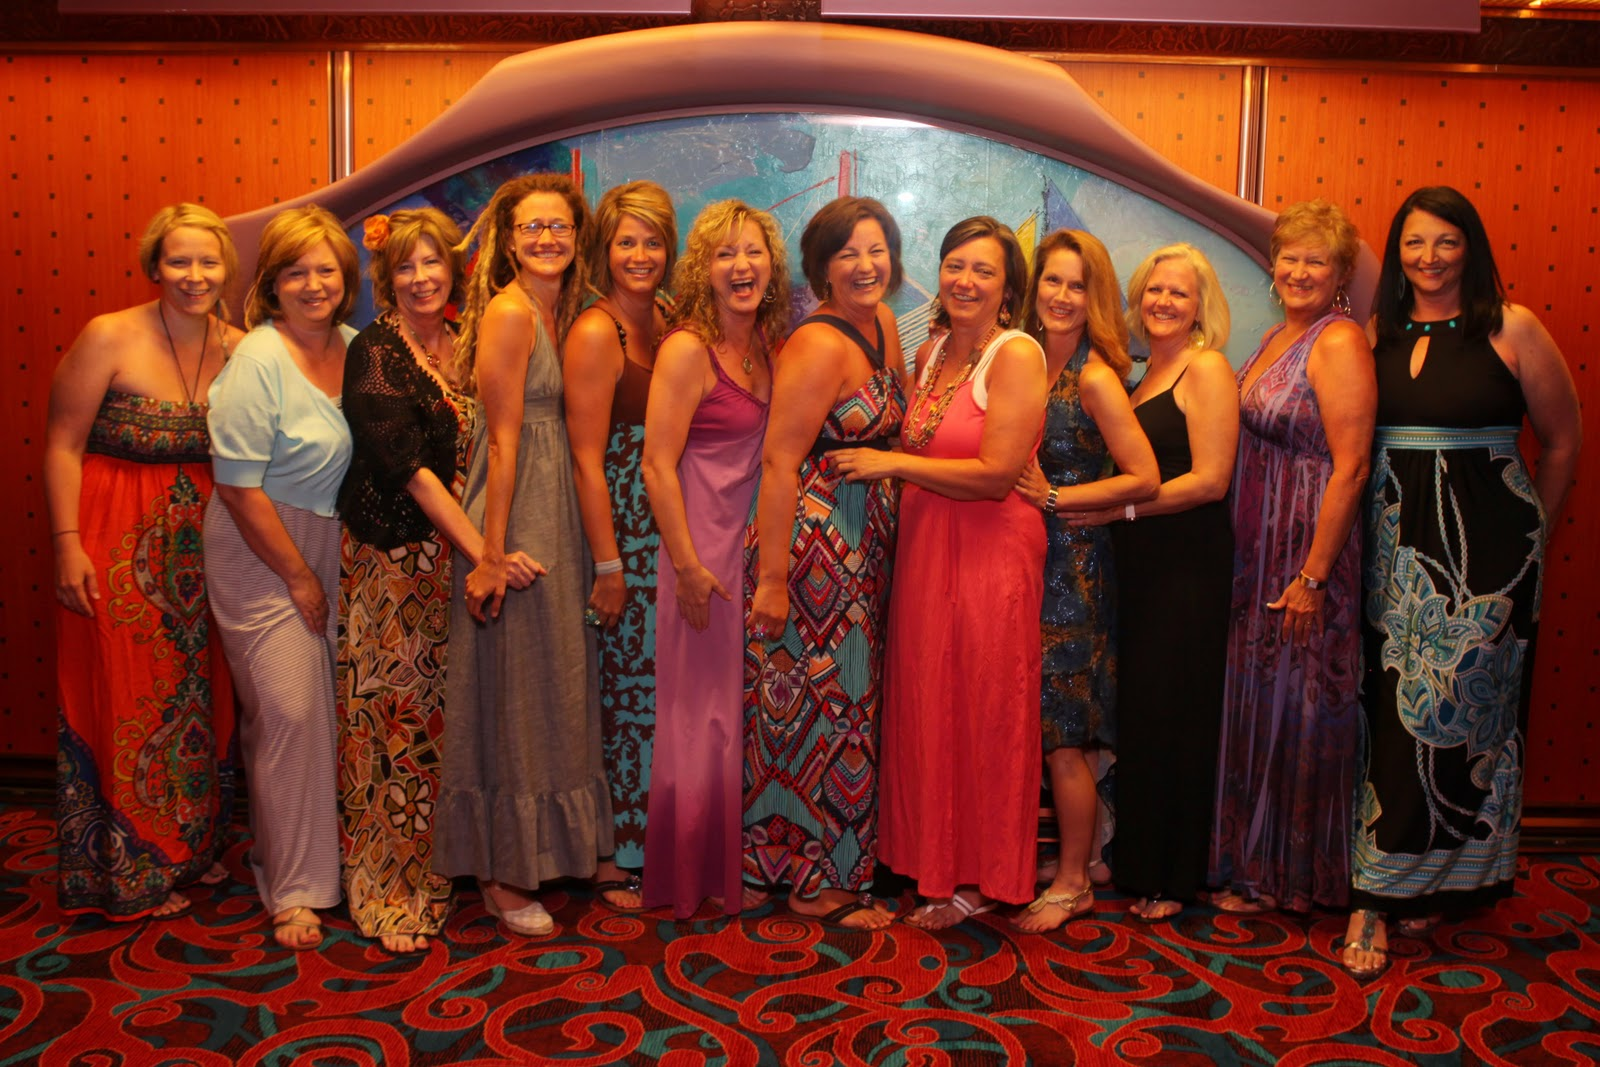 a8009982c63 Carnival Cruise Dinner Dress Code. Jacques Vert Dresses For Ladies ...